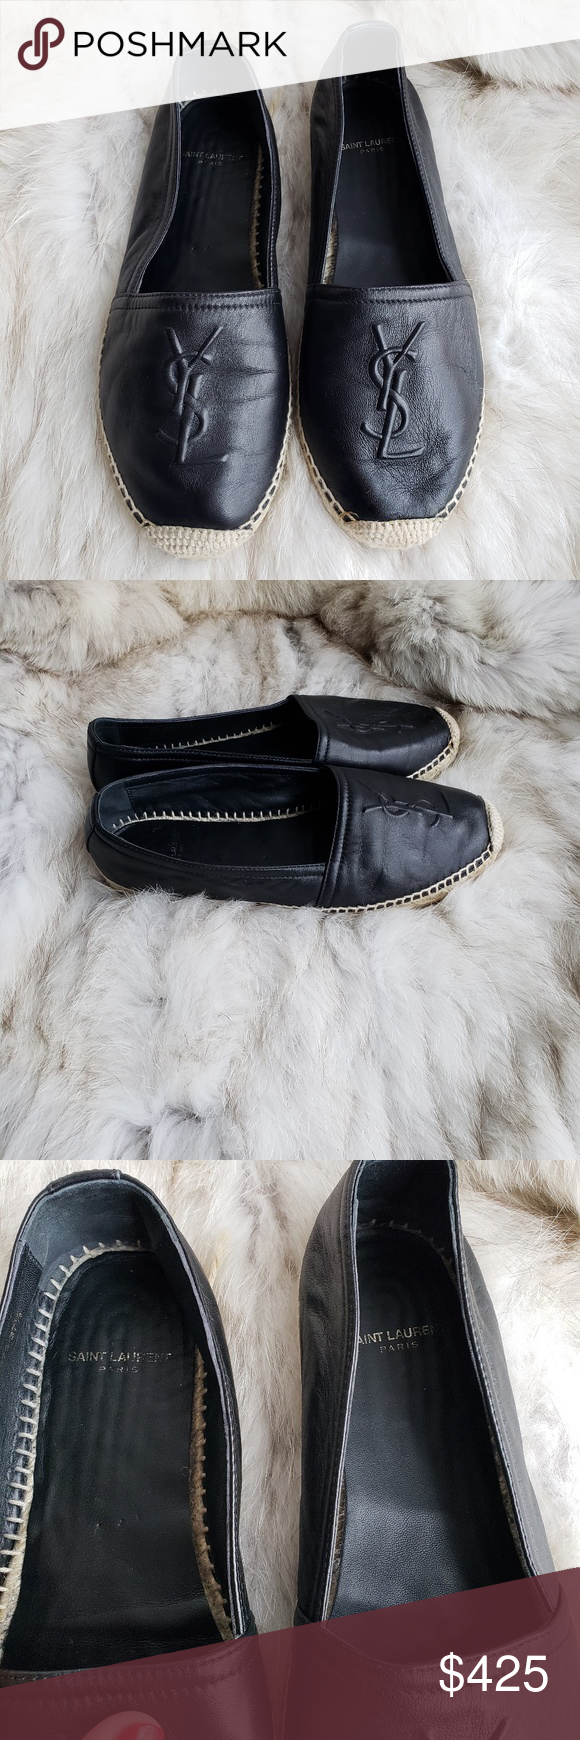 46707e9aa YSL Black Leather Logo Espadrille Loafer 37.5 YSL ESPADRILLE flats size  37.5 These are in excellent used condition. No box or bag. No returns. Yves  Saint ...